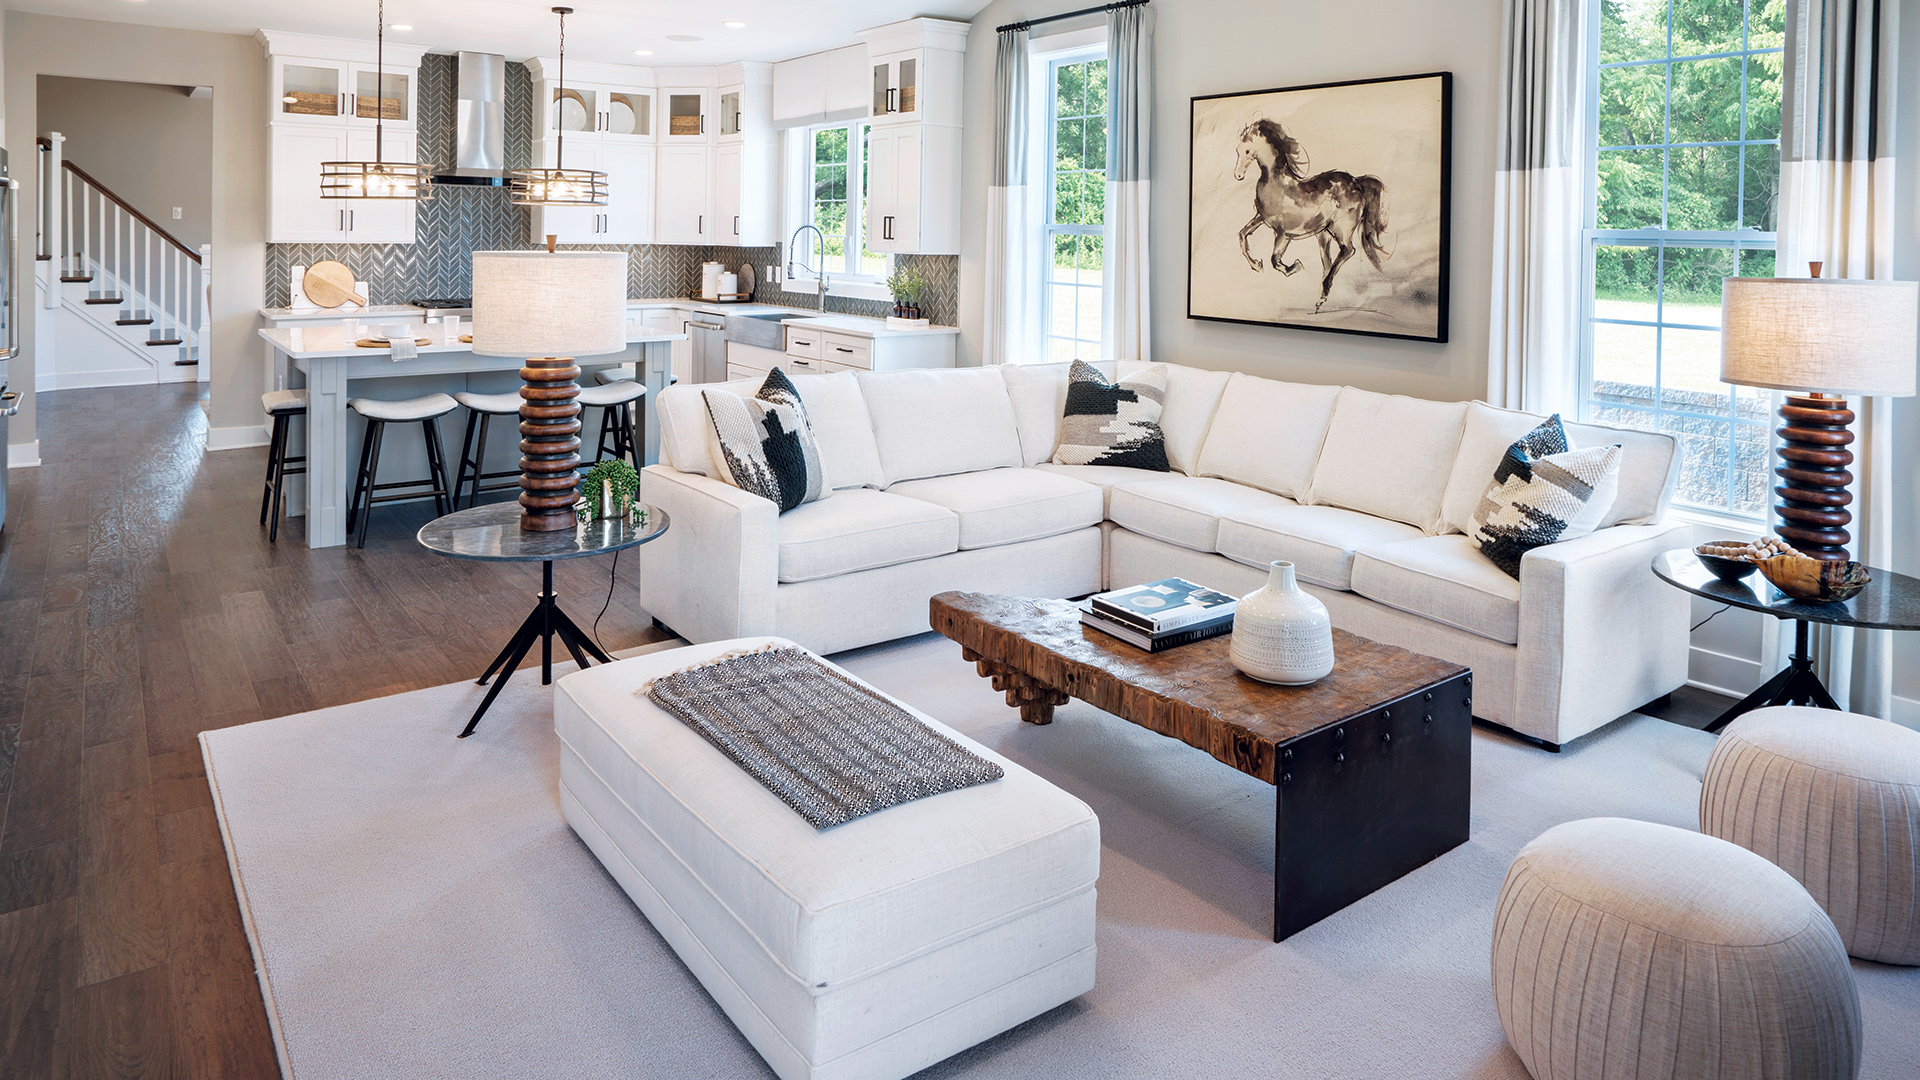 Brand-new home designs with first-floor primary bedroom suites and open-concept layouts